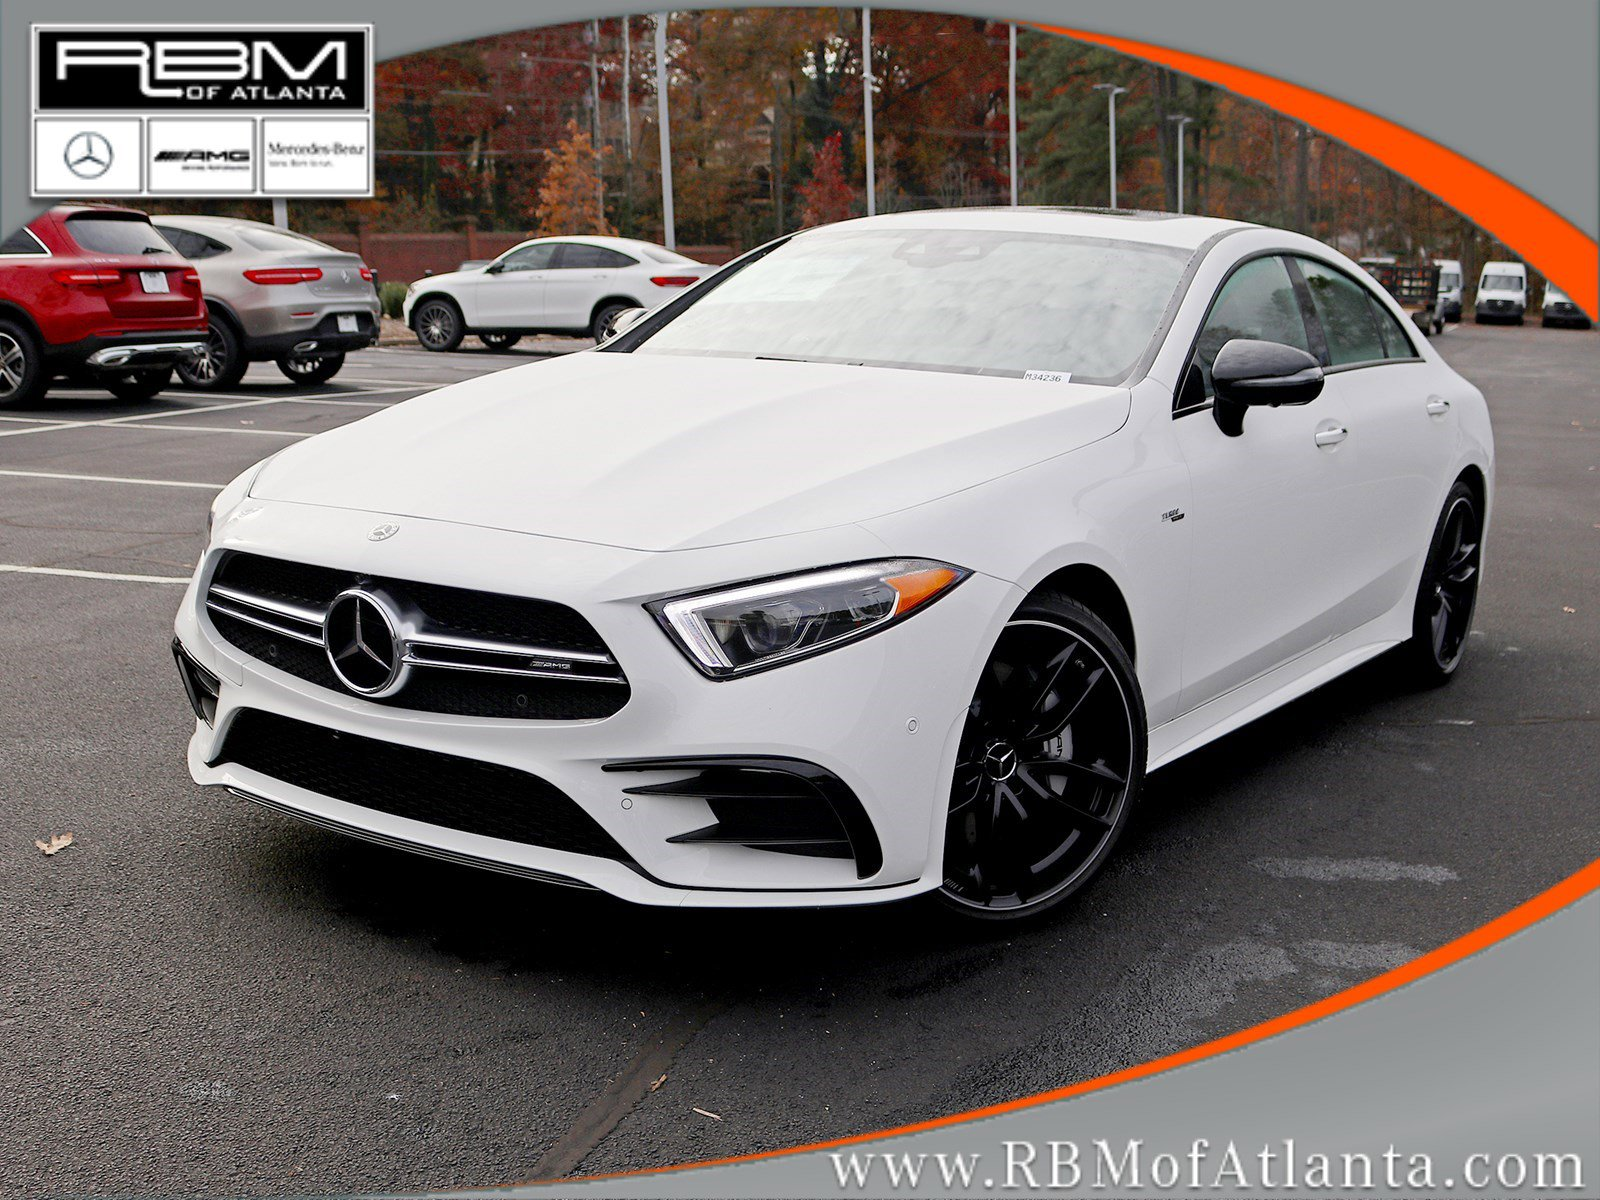 New 2020 Mercedes-AMG CLS AMG CLS 53 Coupe